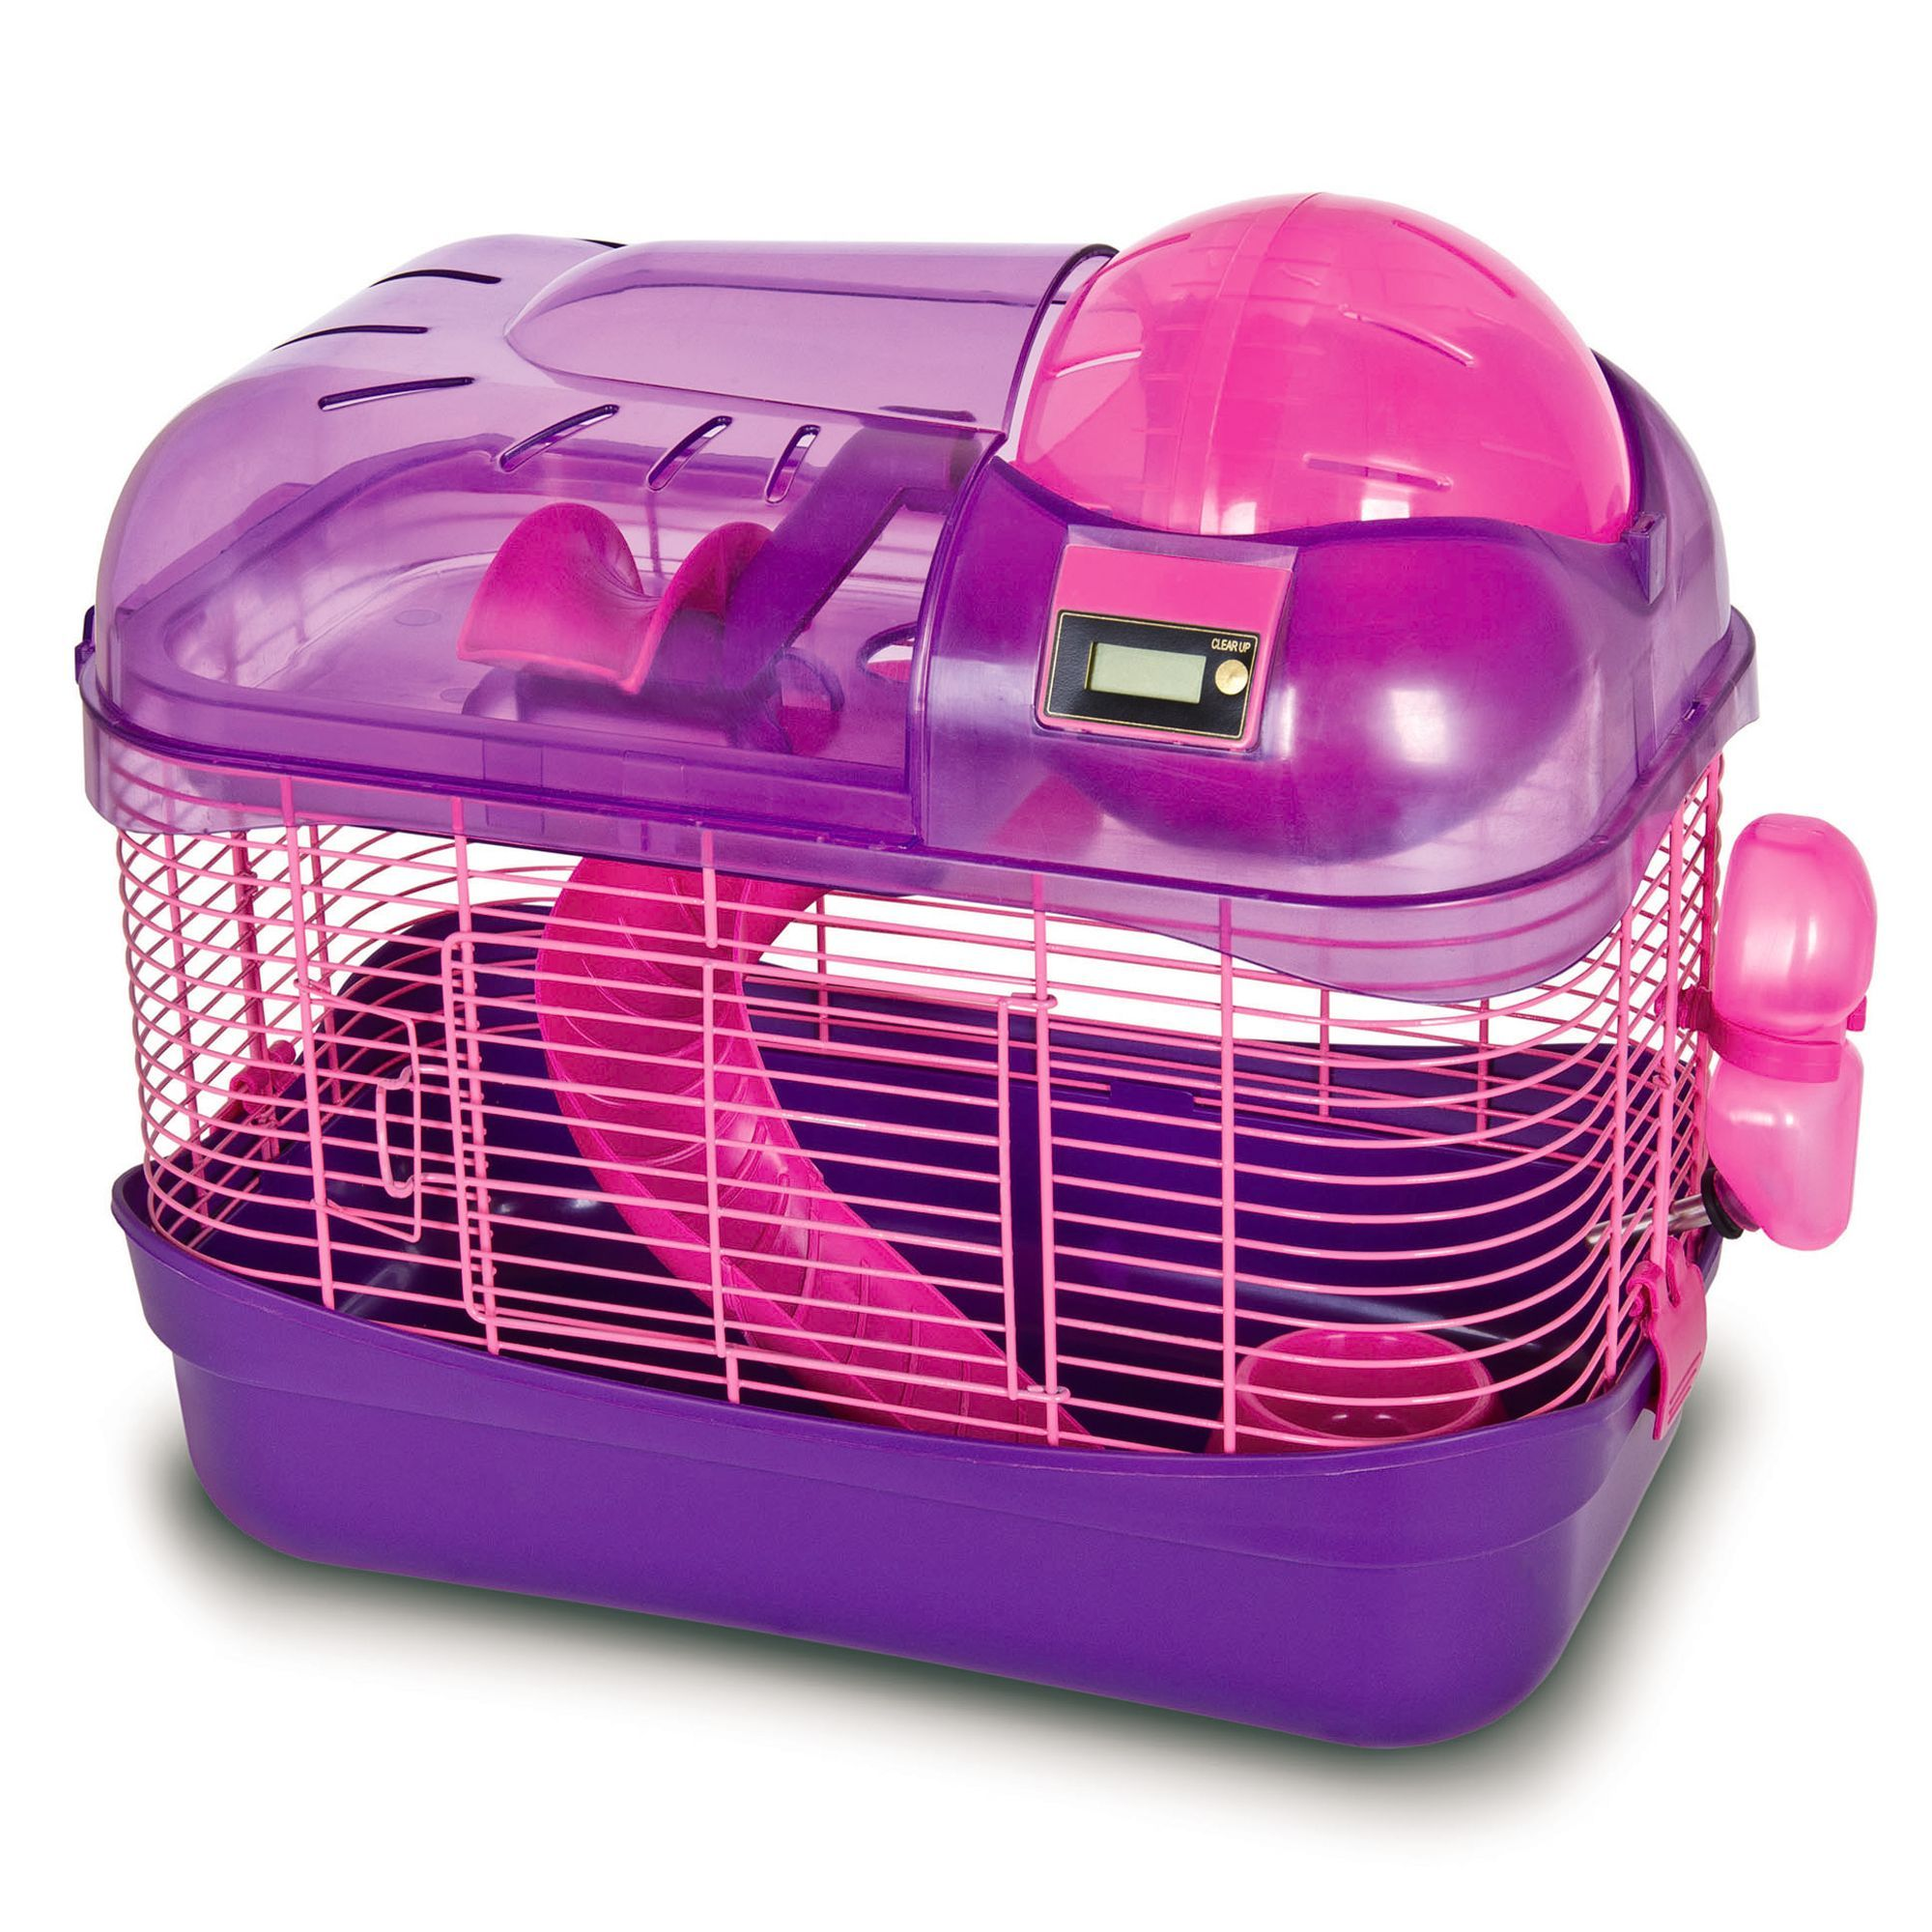 WARE Spin City Health Club Small Pet Habitat, Purple Pet